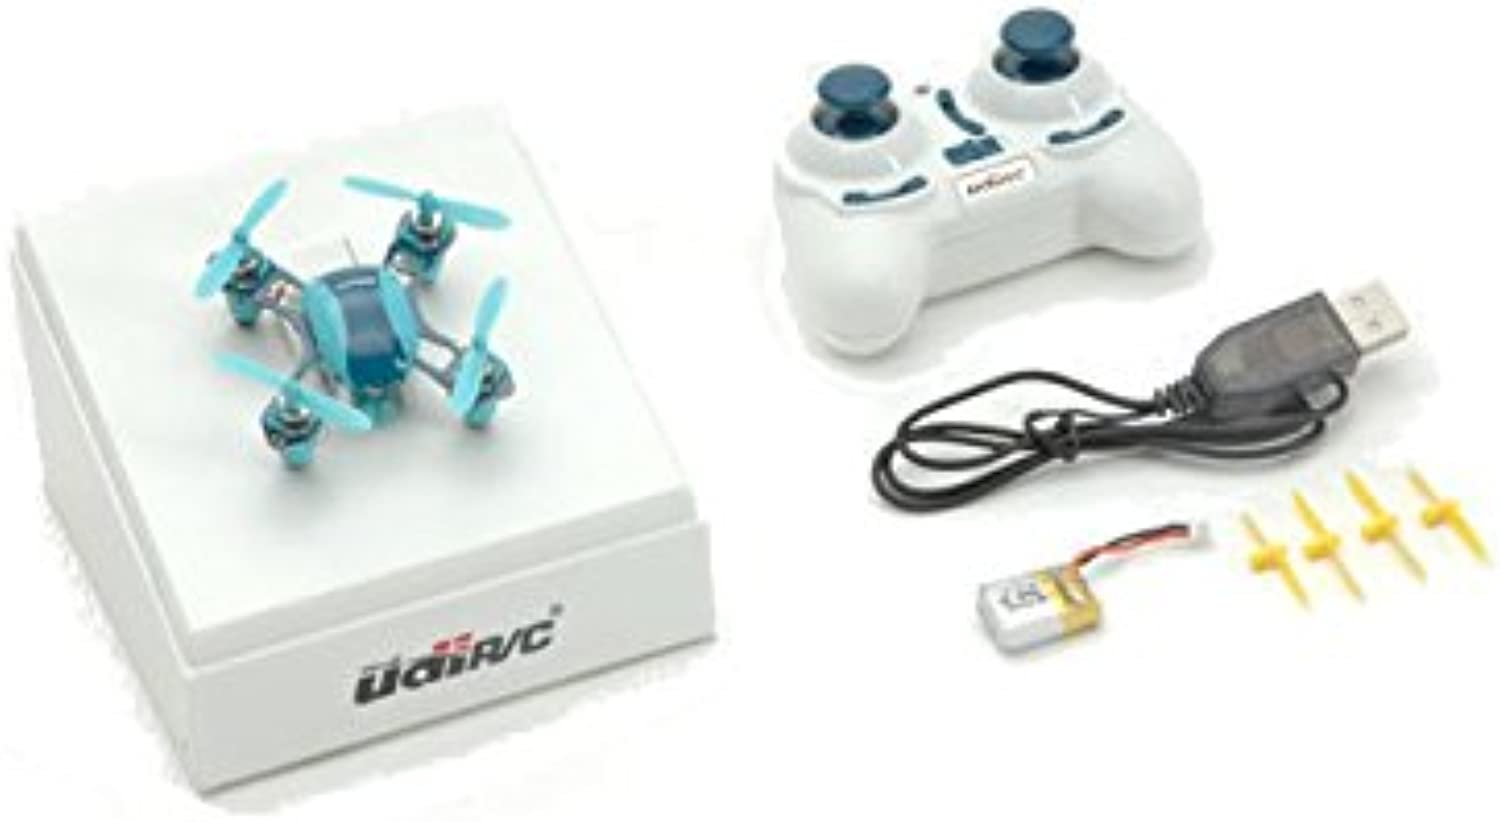 Udi Mini Nano Quad Electric Micro Quadcopter Six-axis Blau A-U840